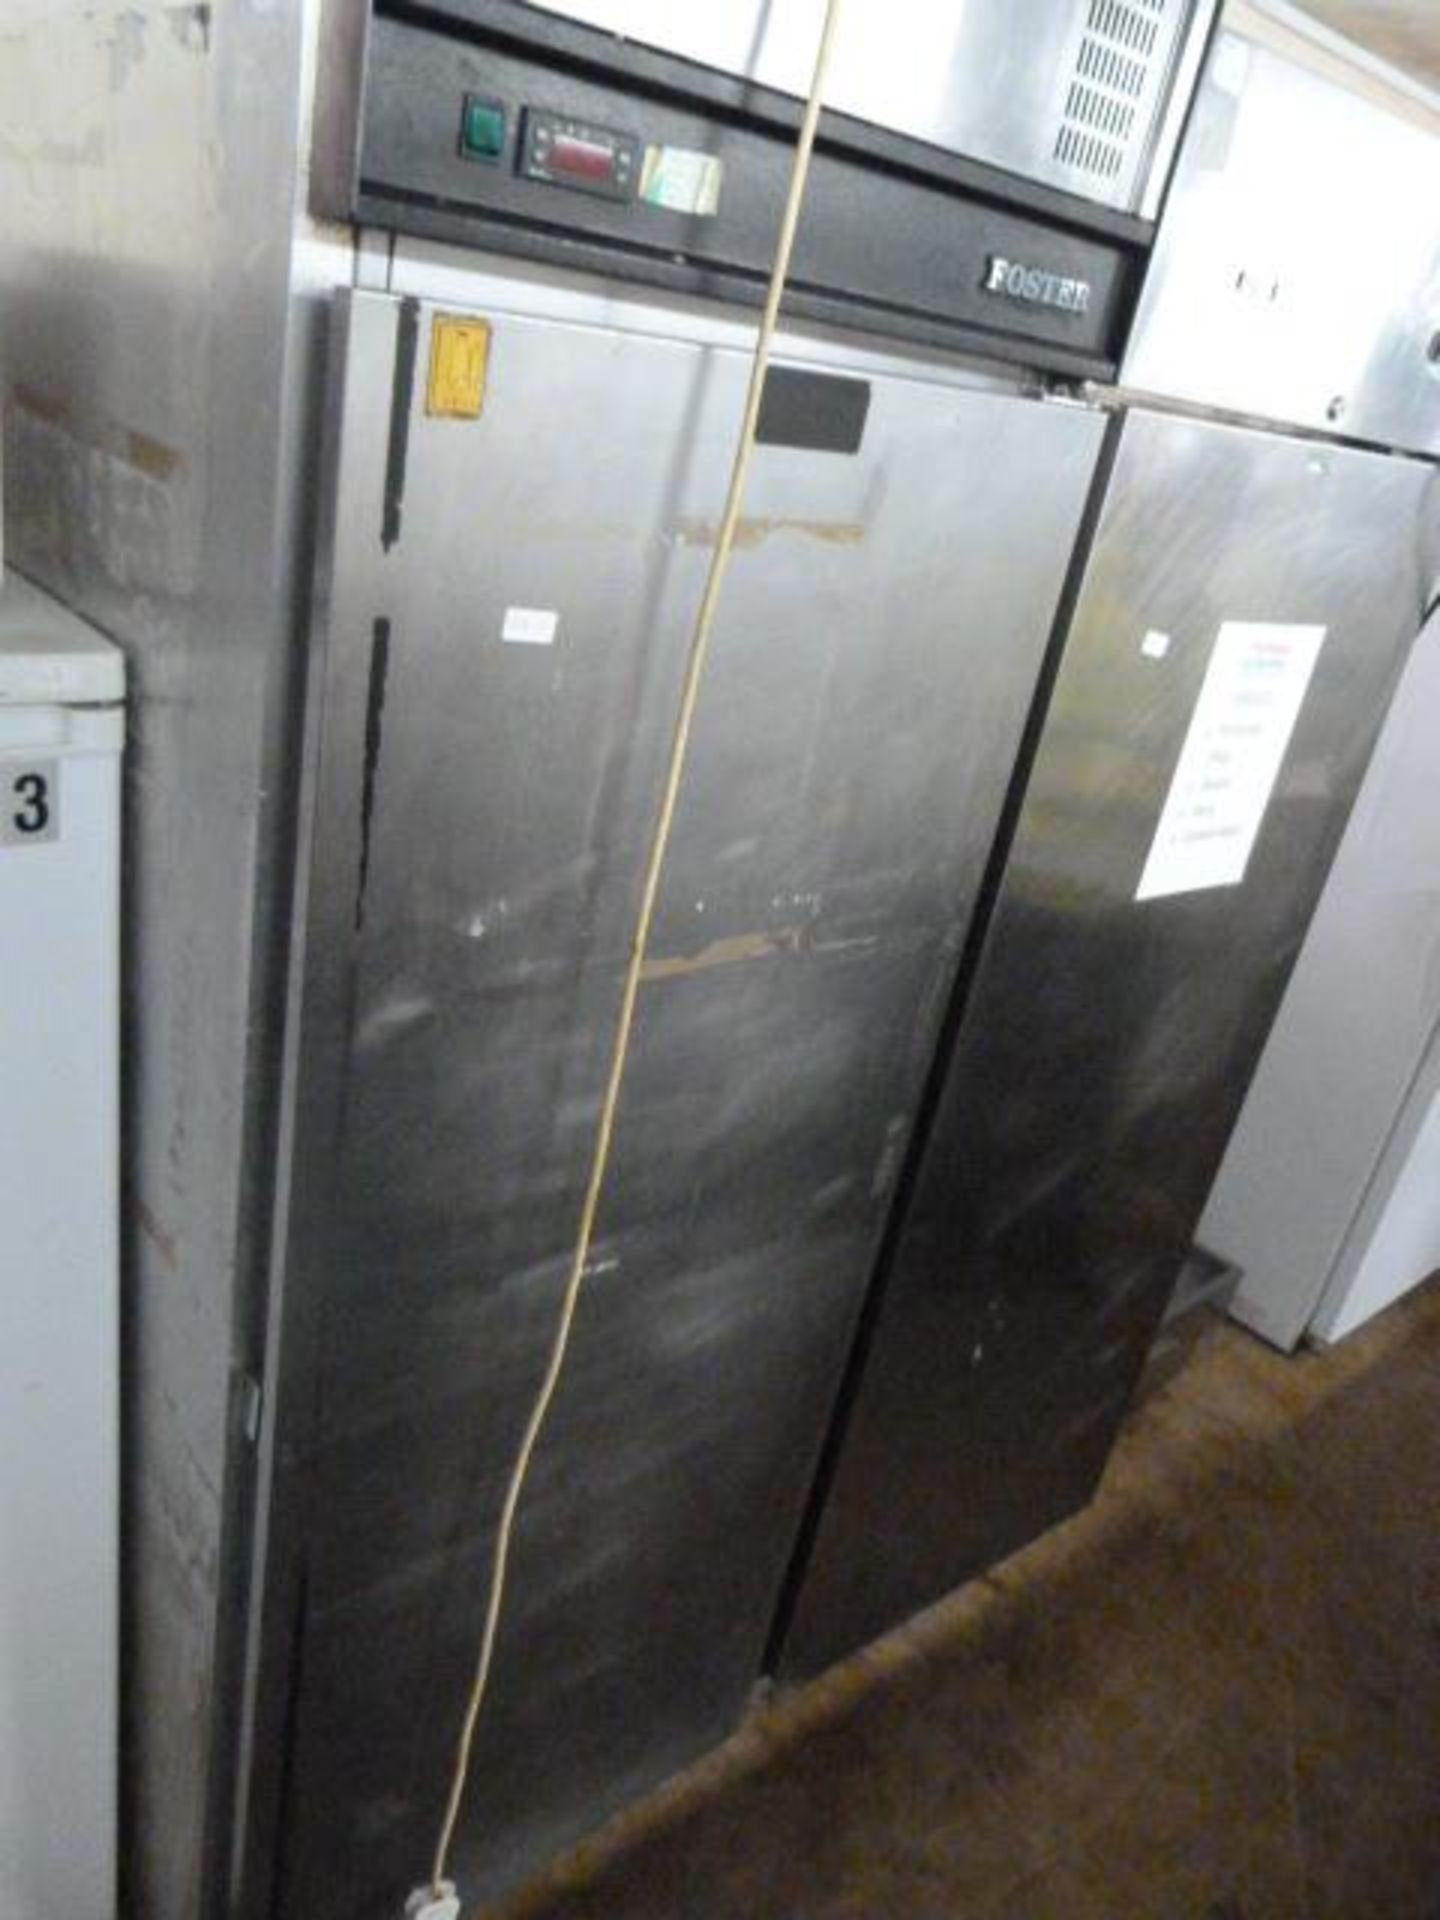 Lot 12 - Foster Stainless Steel Refrigerator